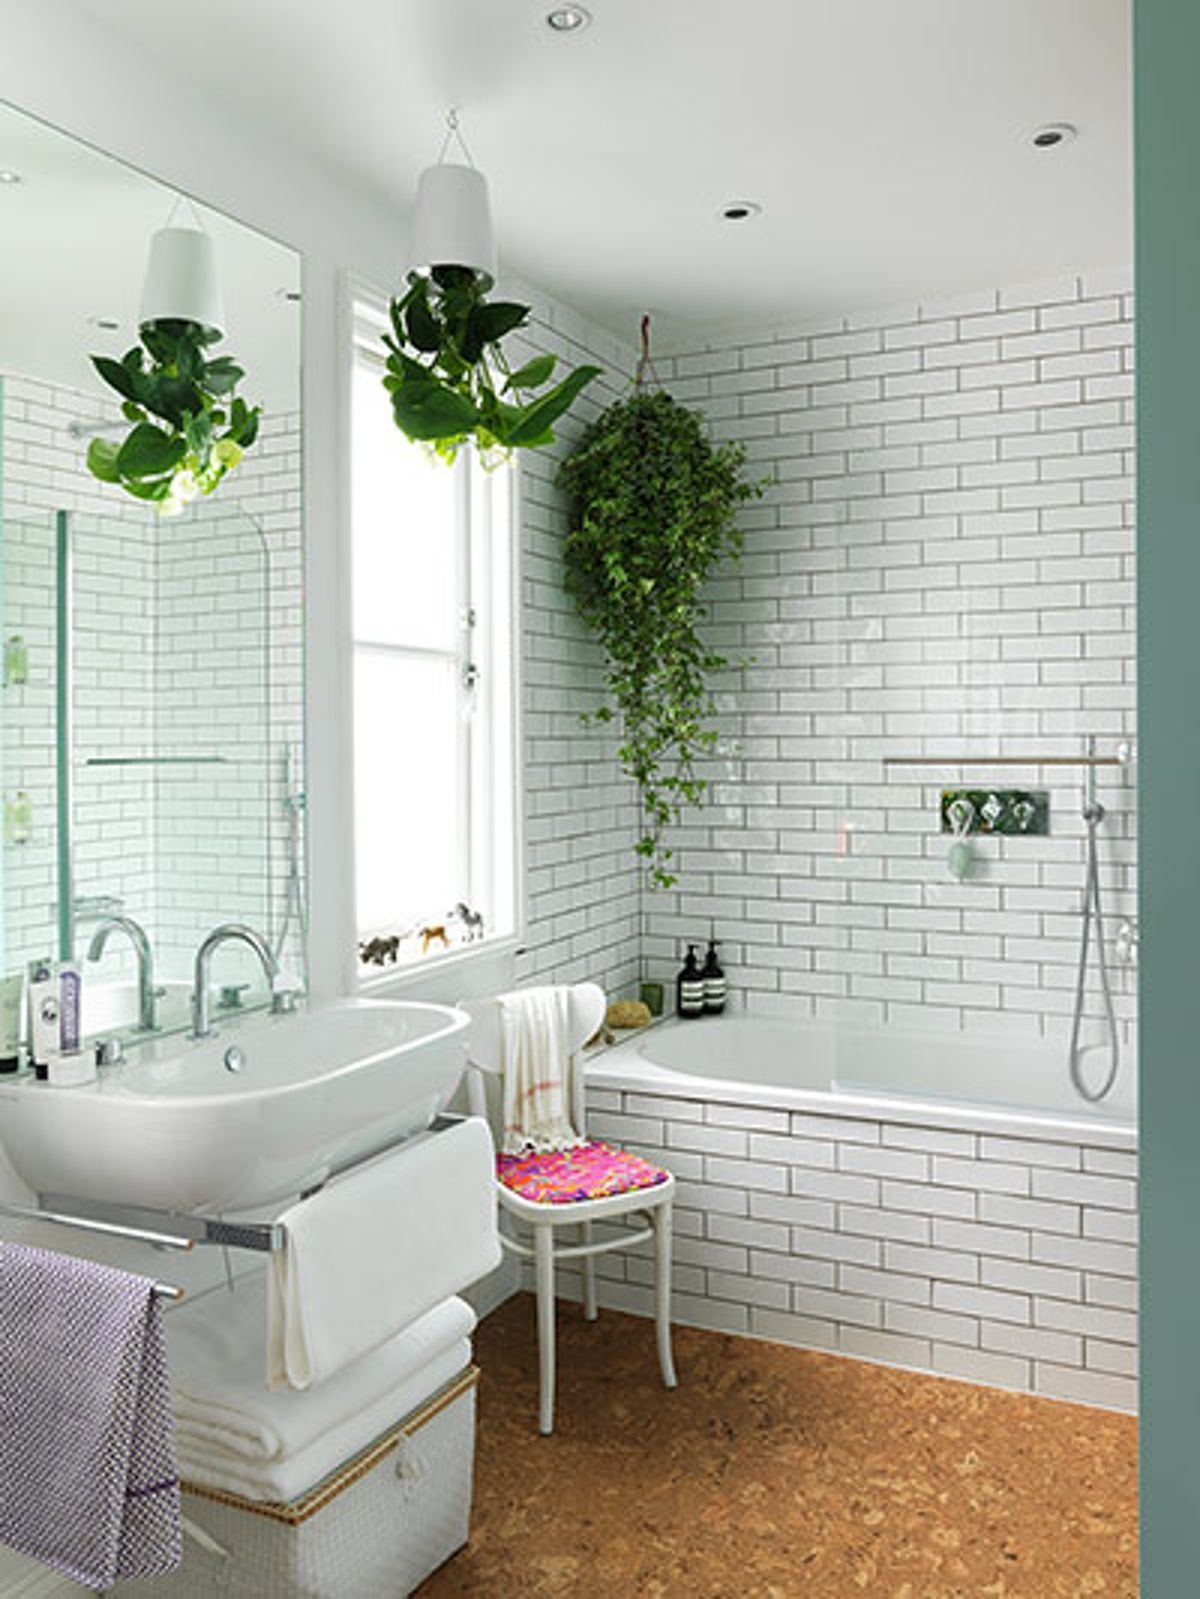 Interiors A Colourful London Home Where East Meets West In Pictures Cork Flooring Interior Bathrooms Remodel